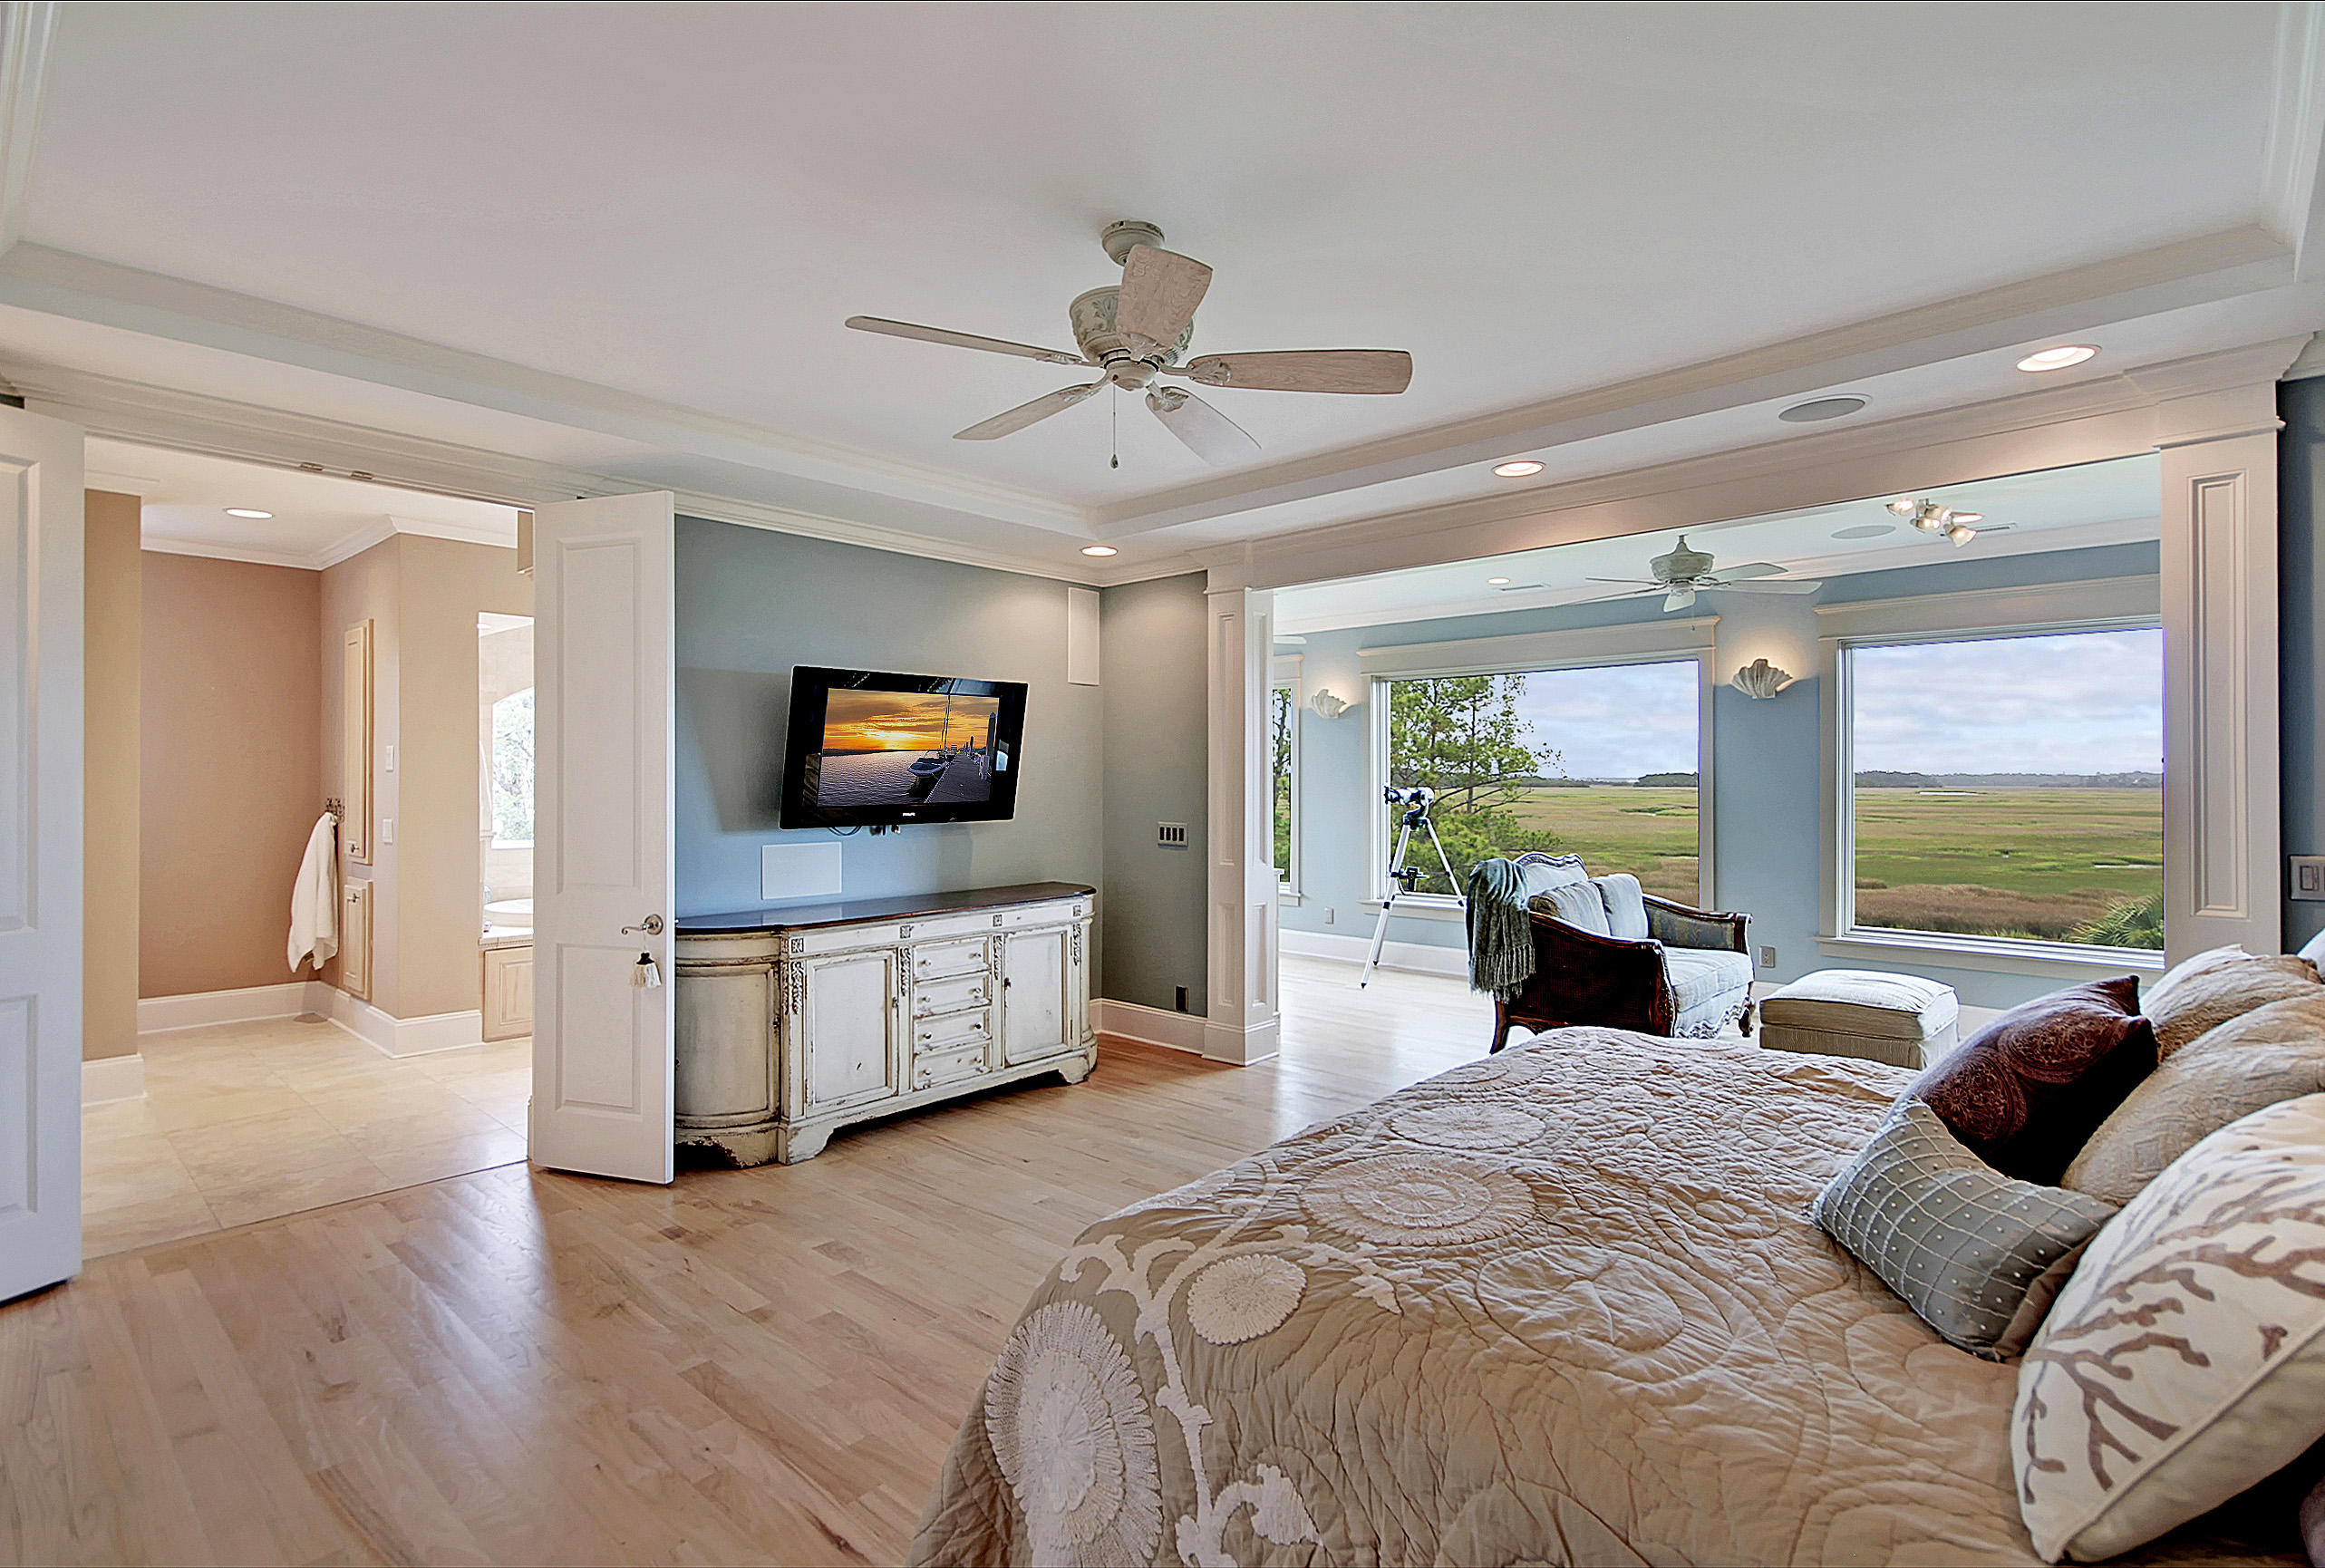 Belle Hall Homes For Sale - 210 Island Point, Mount Pleasant, SC - 7